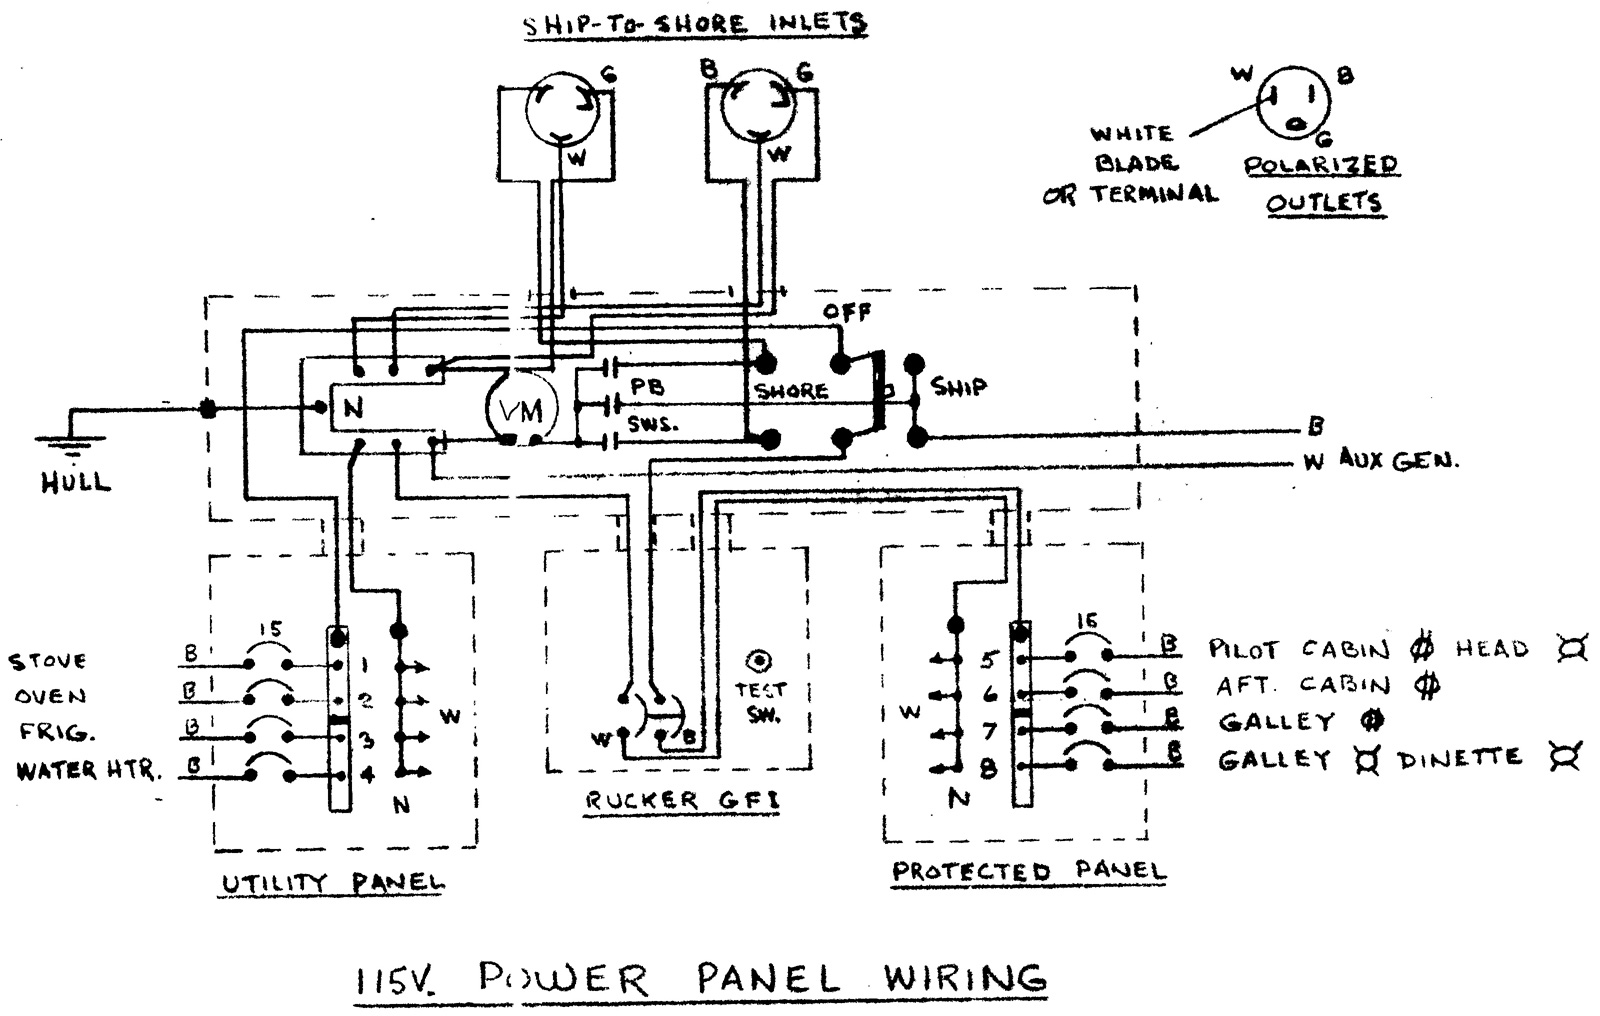 chaparral rv wiring diagram get free image about wiring diagram